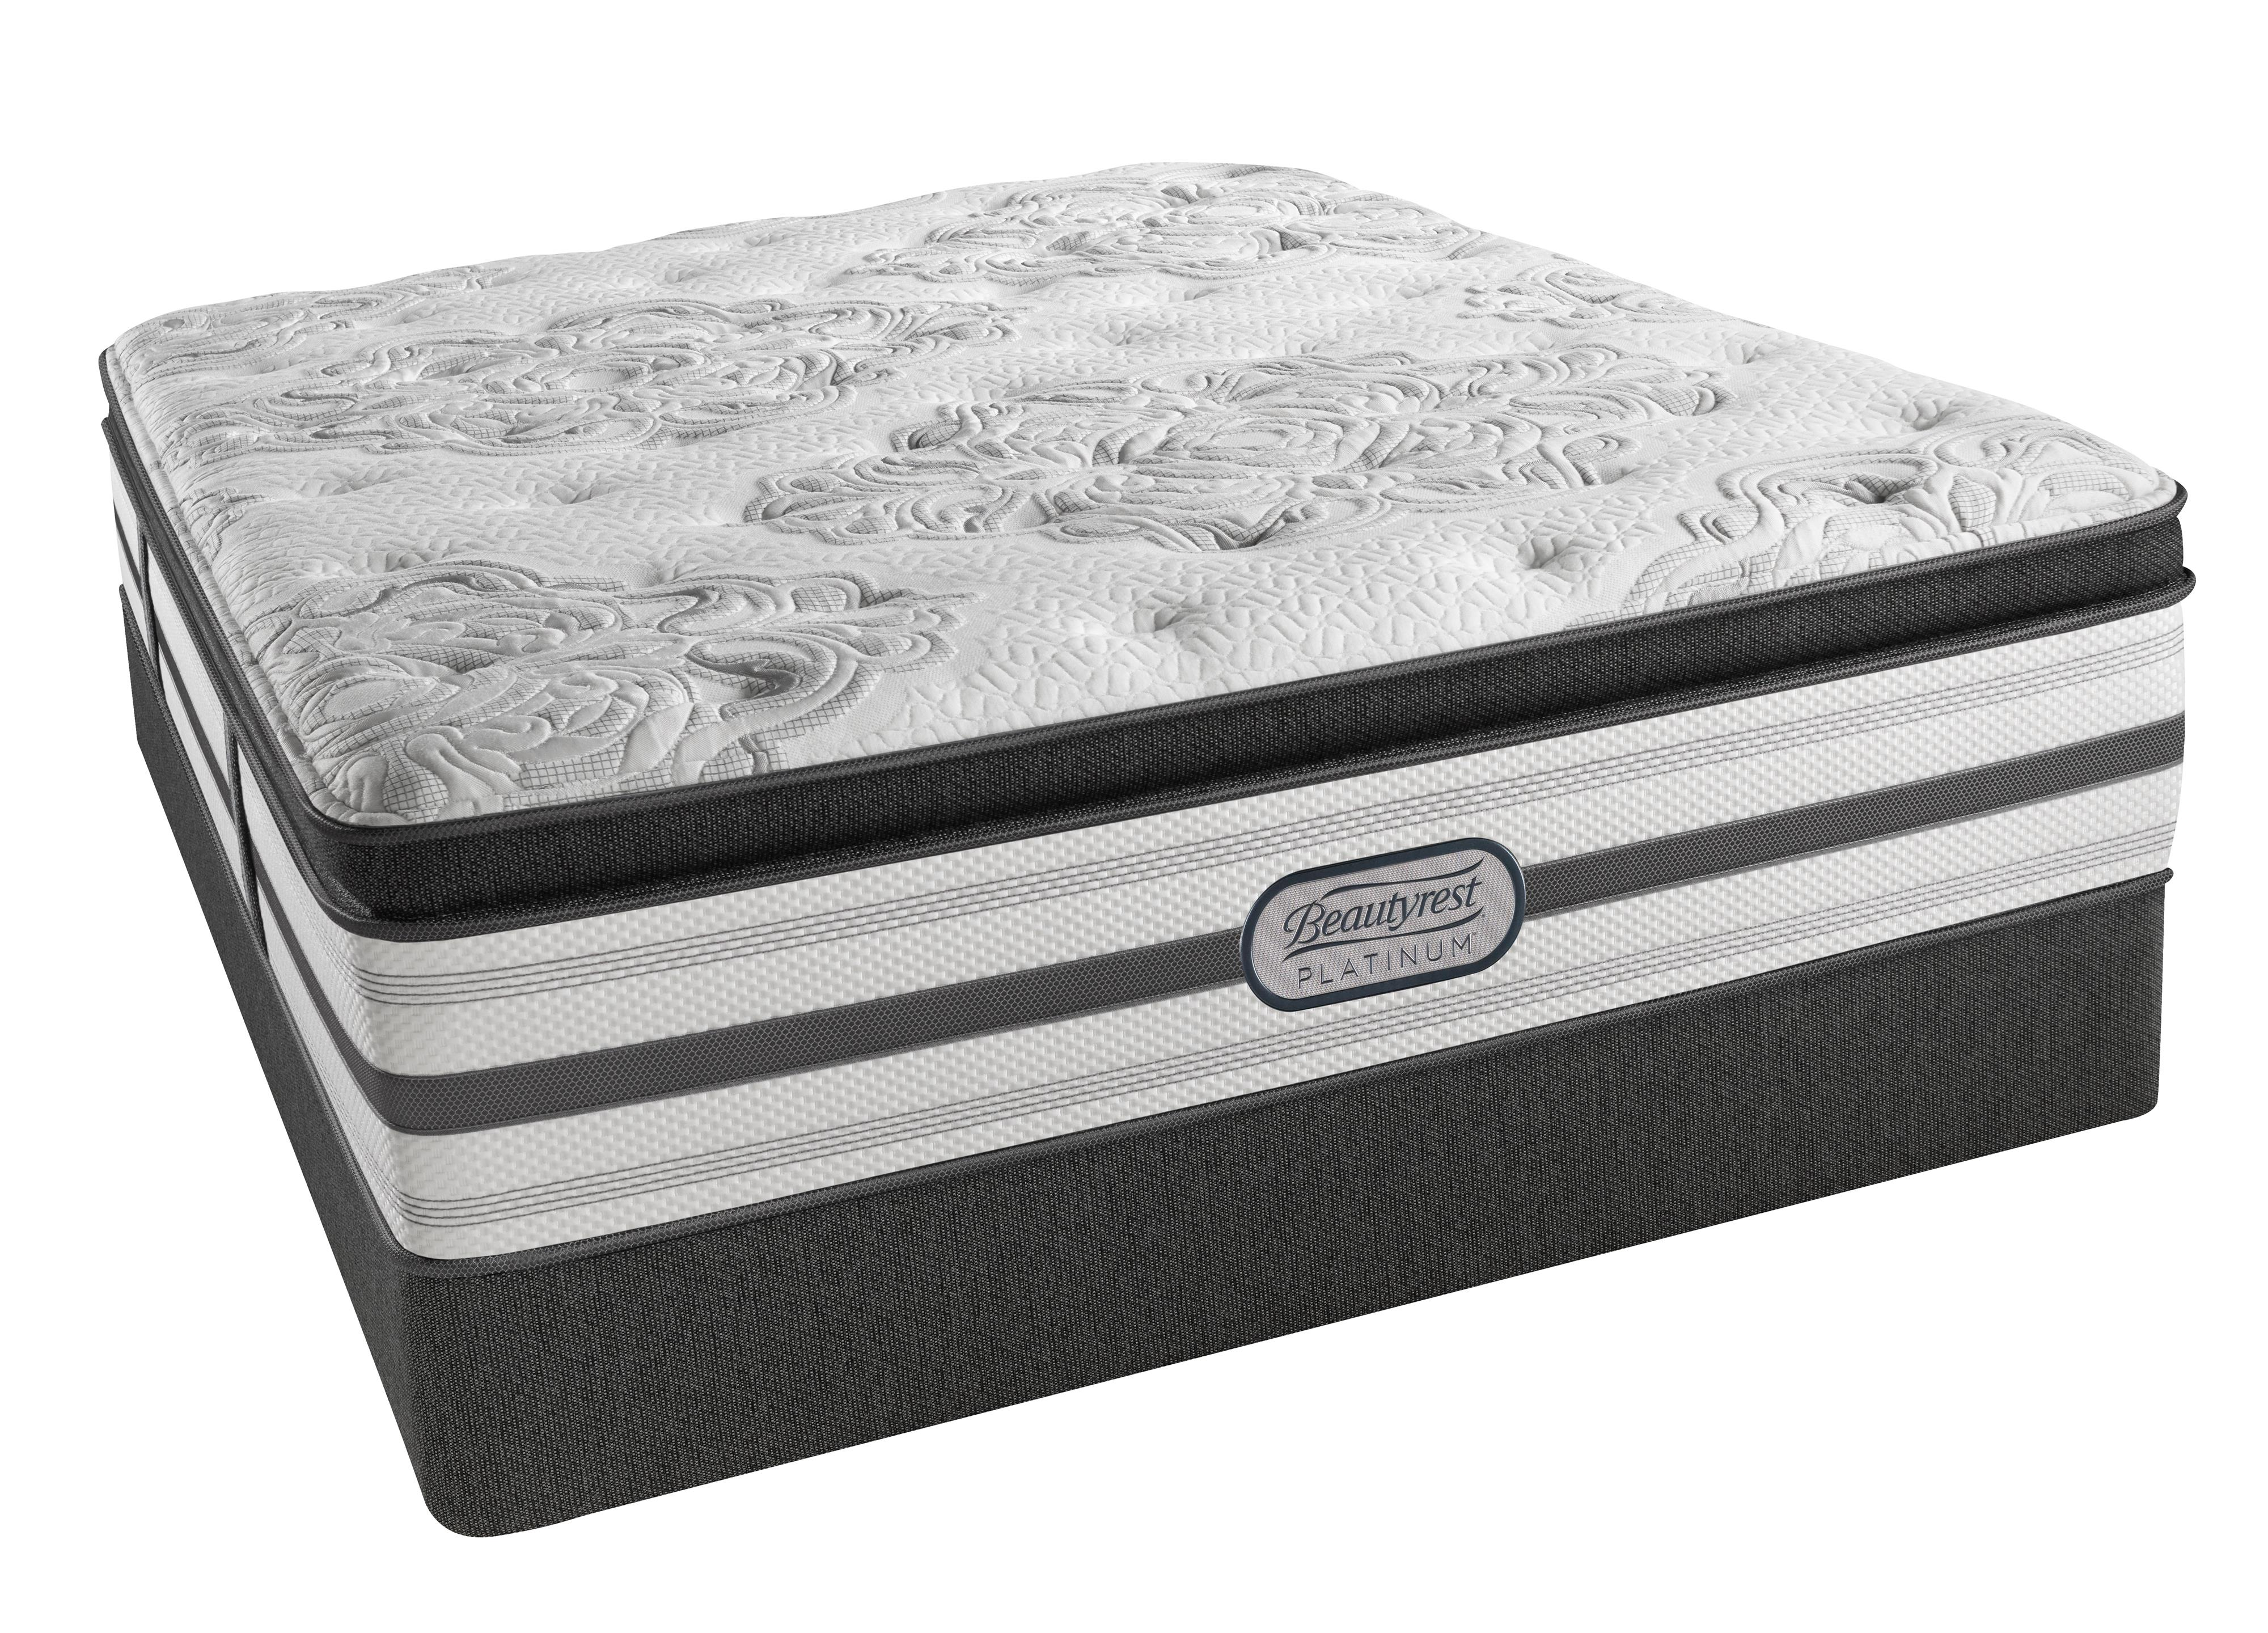 Beautyrest Platinum Gabriella King Luxury Firm Pillow Top Adjustable Set - Item Number: LV3LFPT-K+2xSM1-TXLK